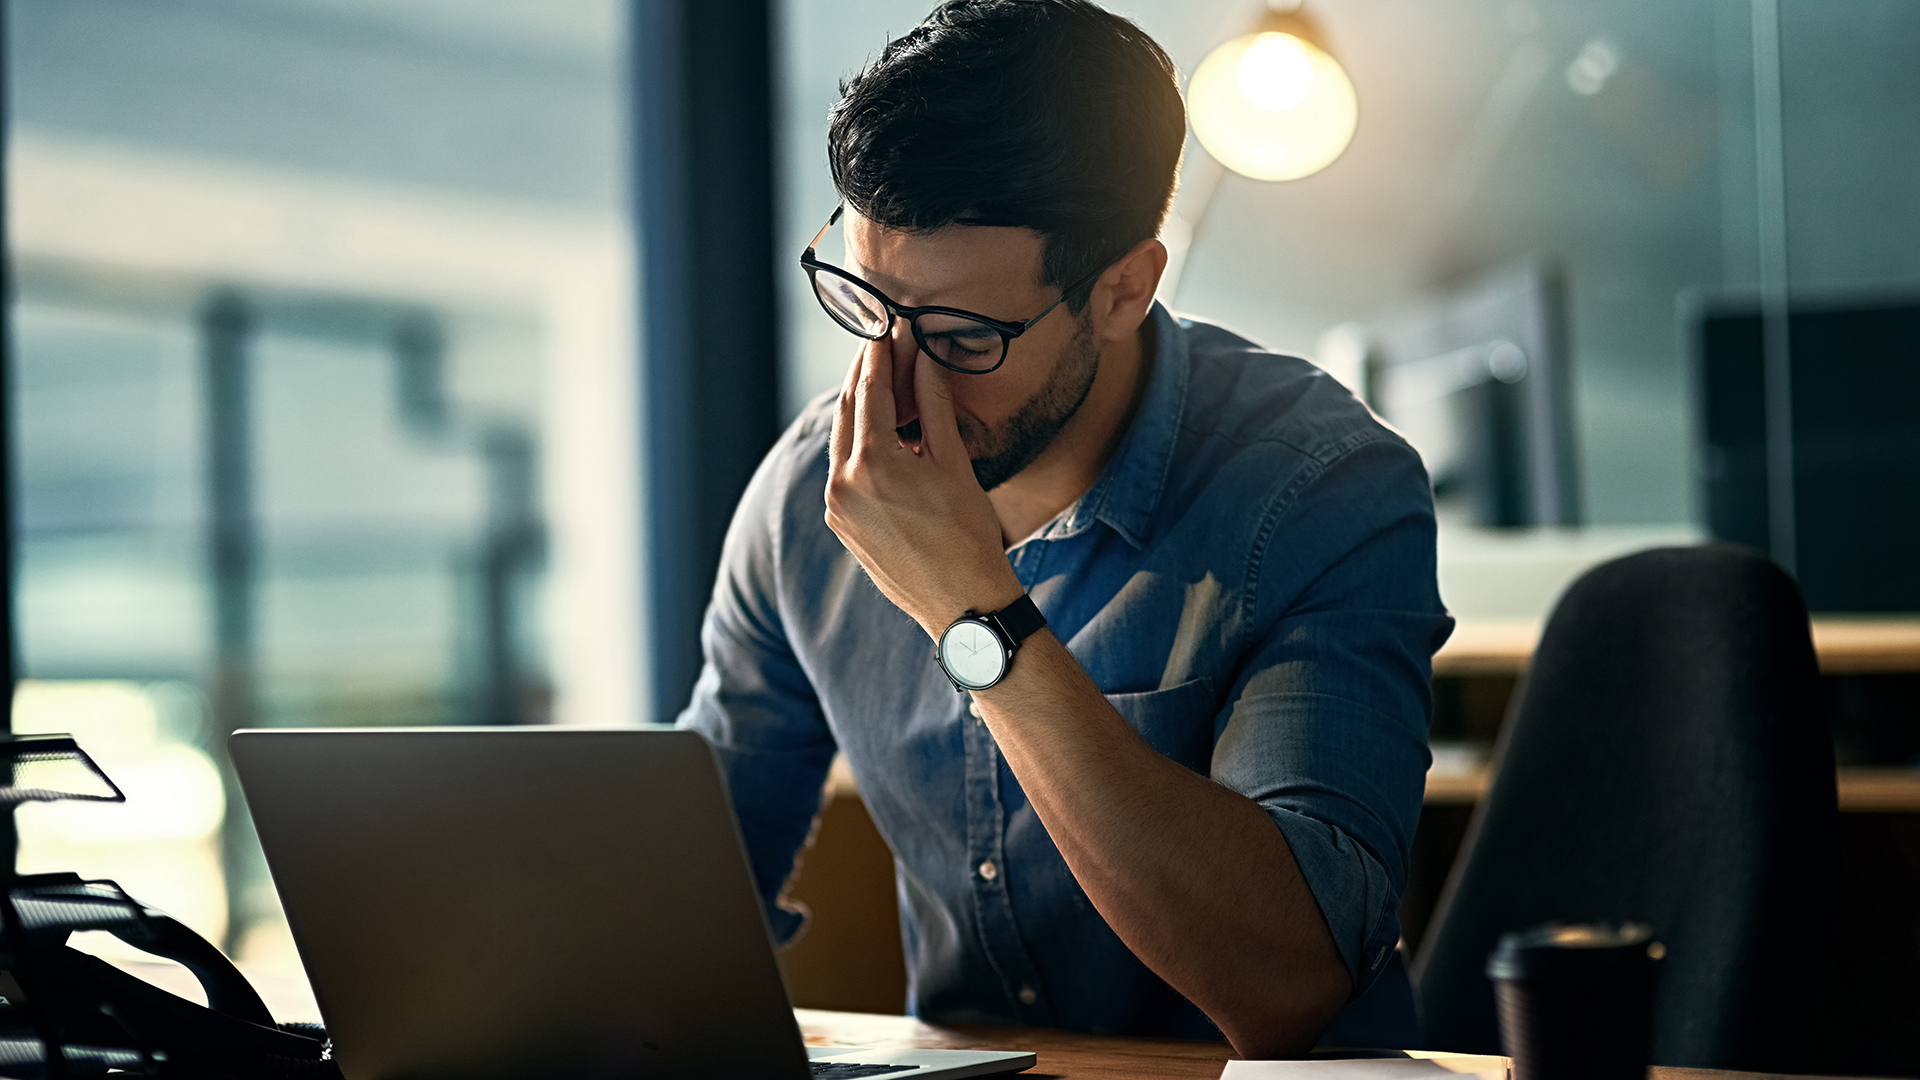 Healthworks: Workplace Stress and Tips to Avoid It